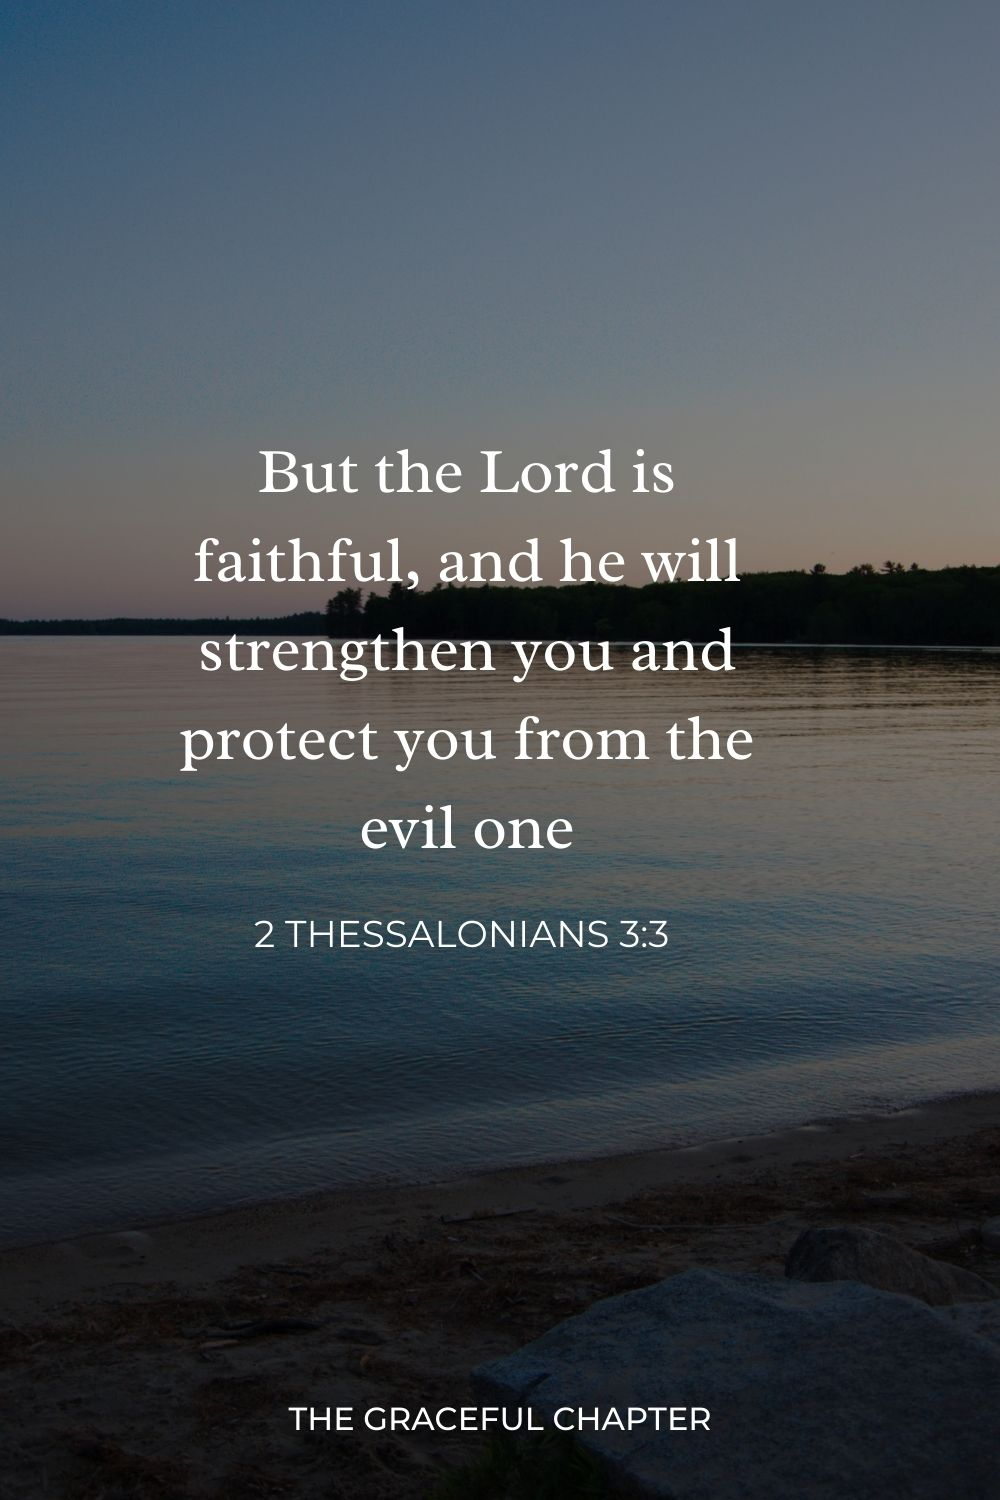 But the Lord is faithful, and he will strengthen you and protect you from the evil one 2 Thessalonians 3:3